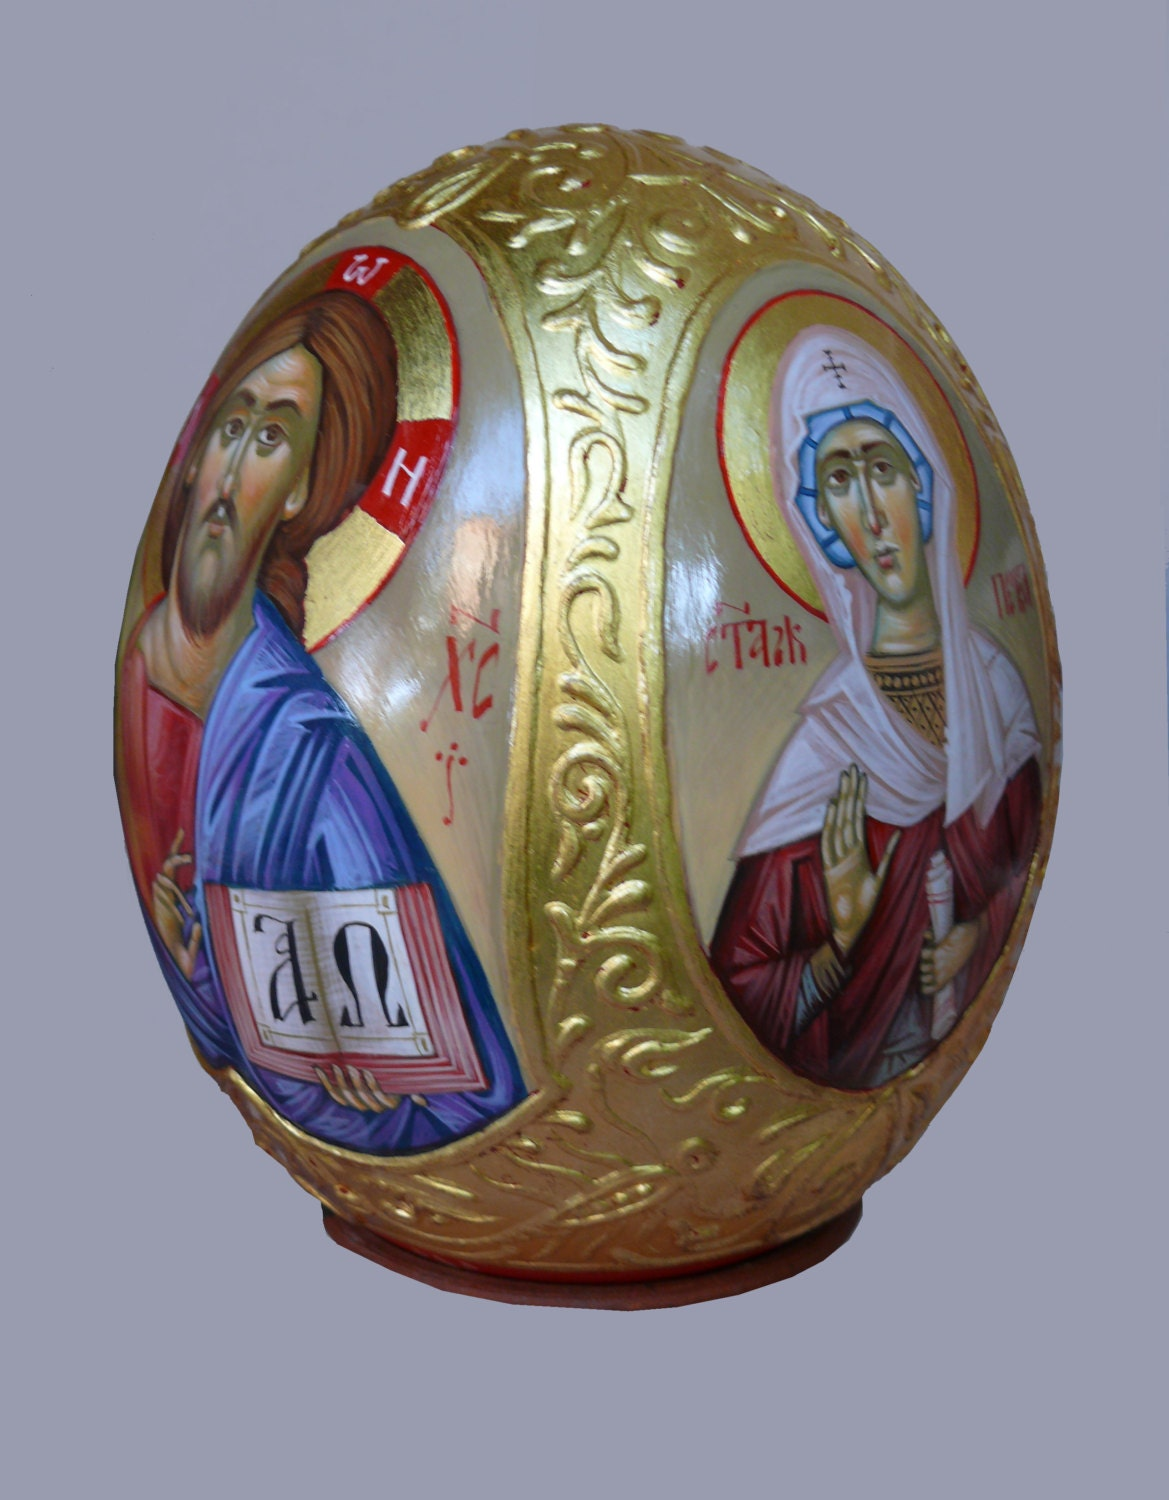 Hand painted ostrich egg egg icon easter gift orthodox gifts hand painted ostrich egg egg icon easter gift orthodox gifts orthodox icon painted egg byzantine art religious art christian gift negle Images